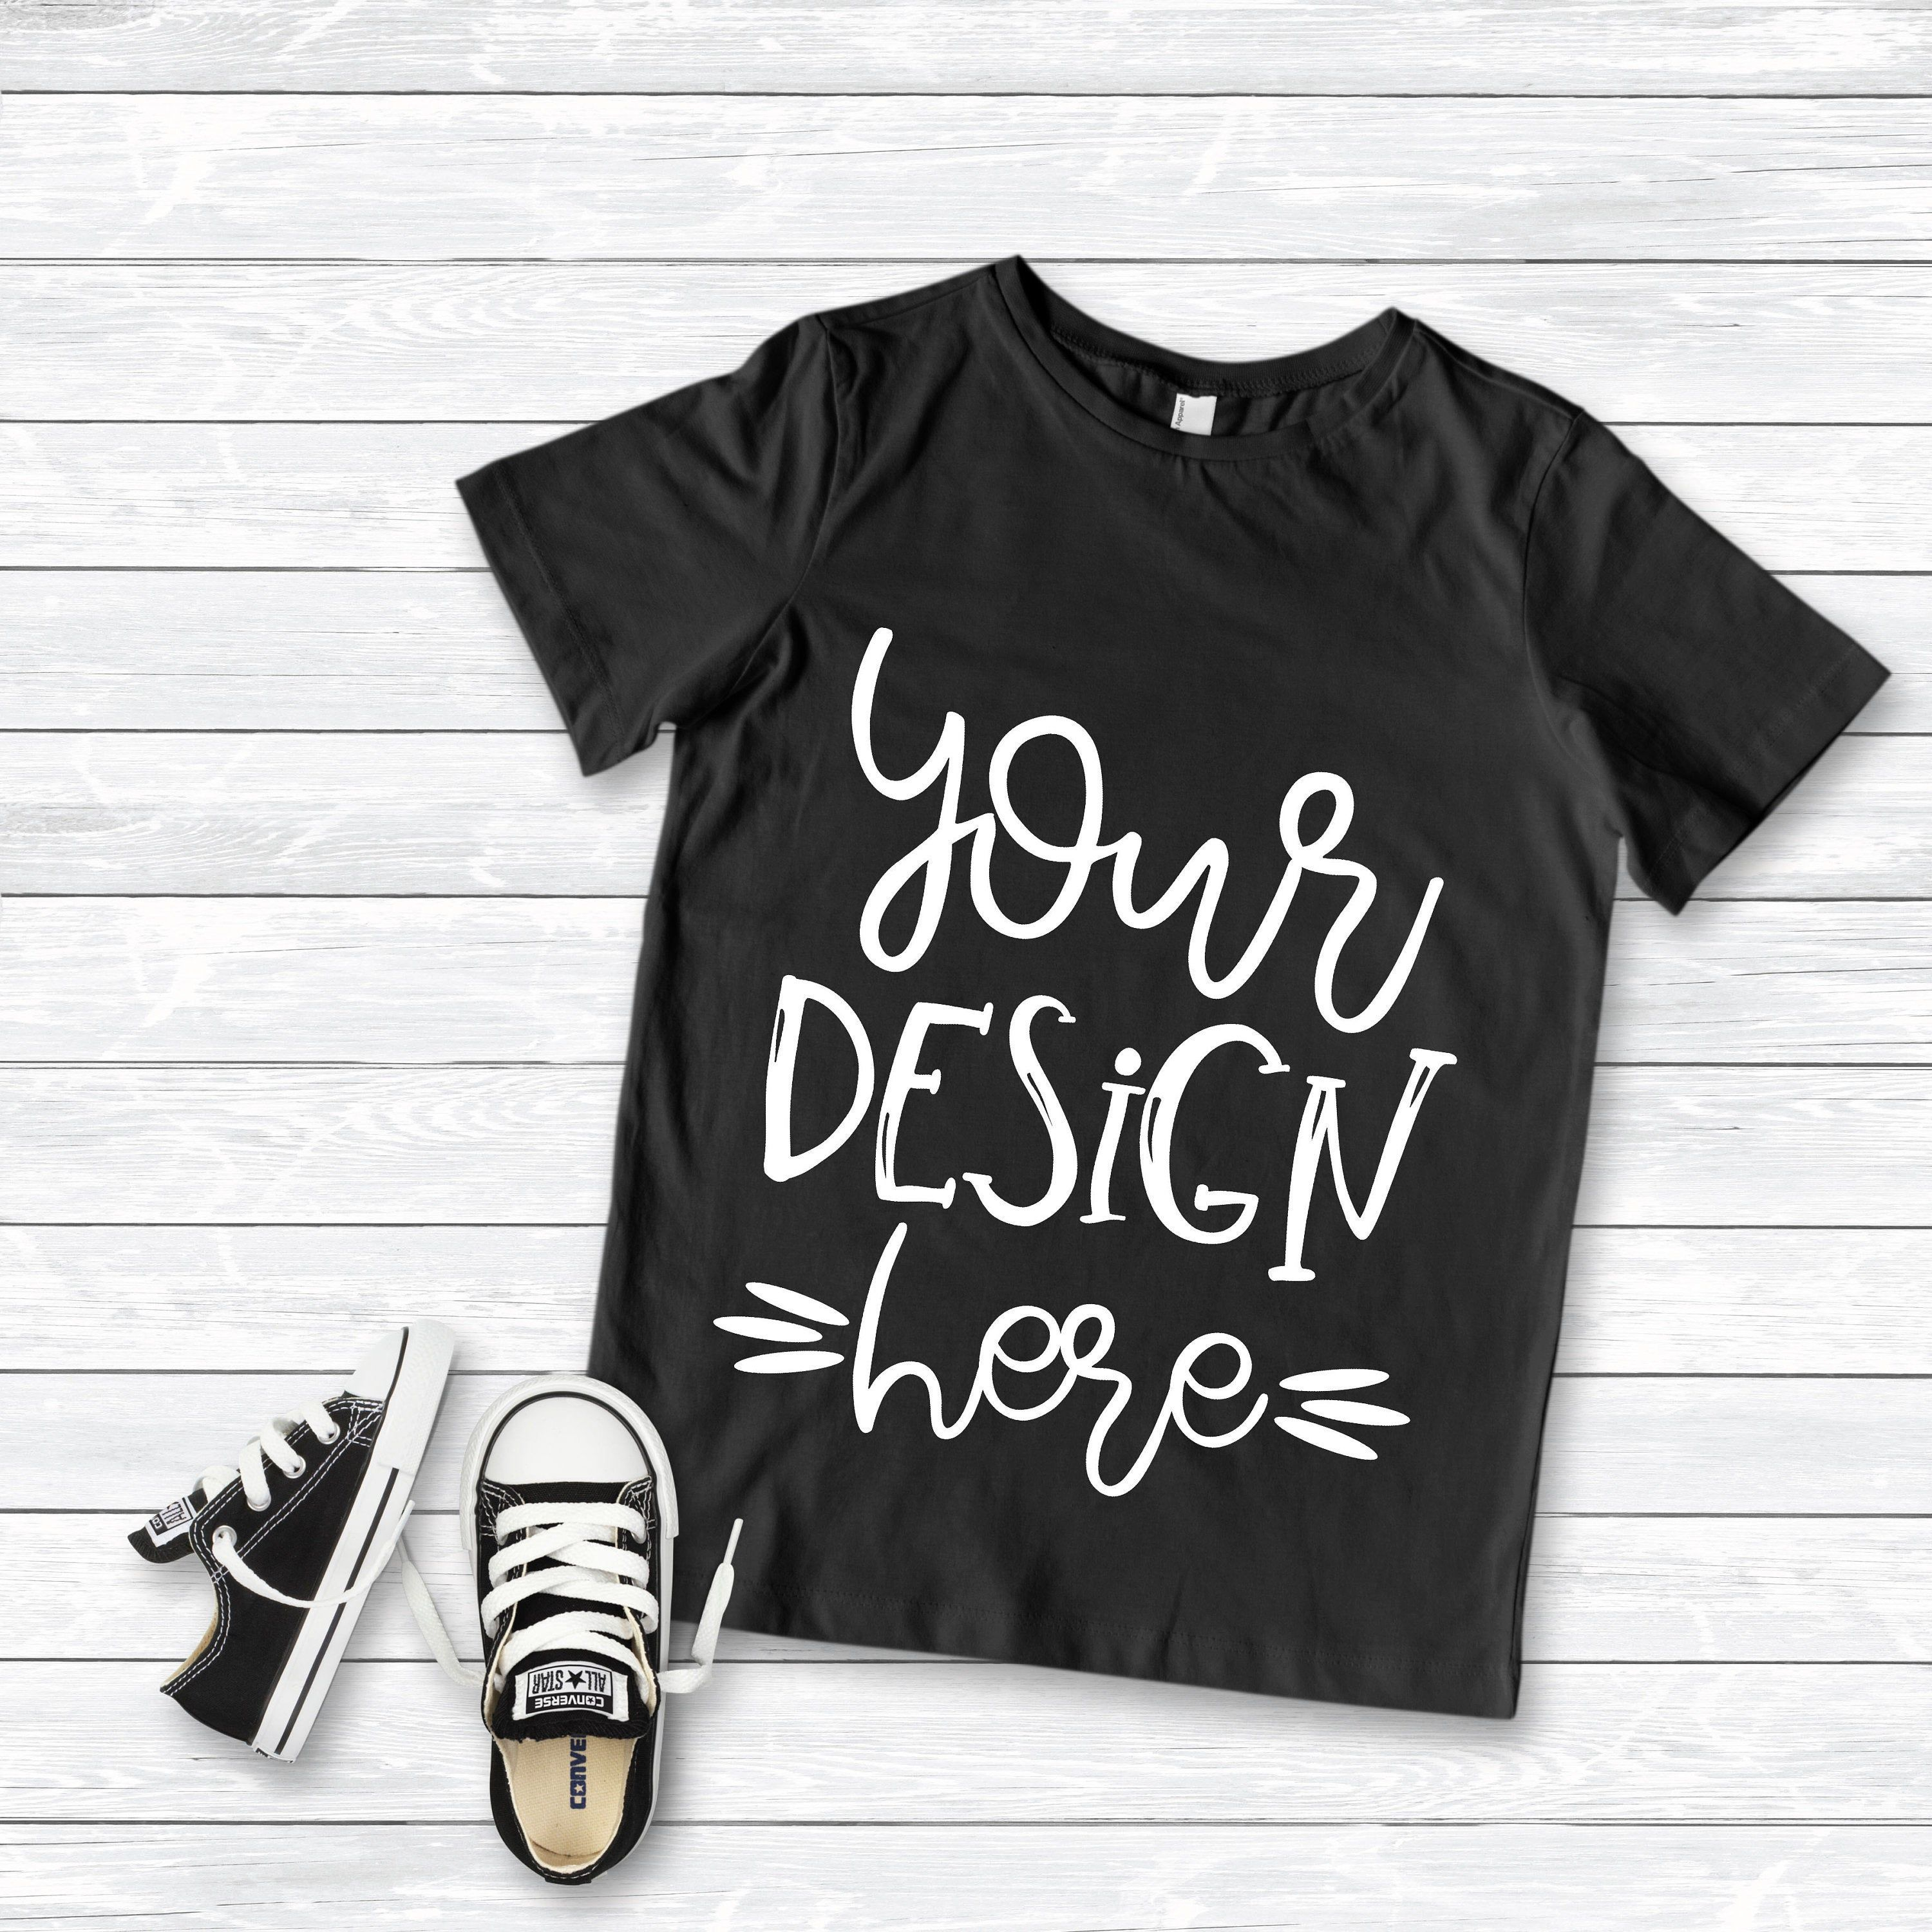 4948+ T Shirt Mockup Free Template for Branding